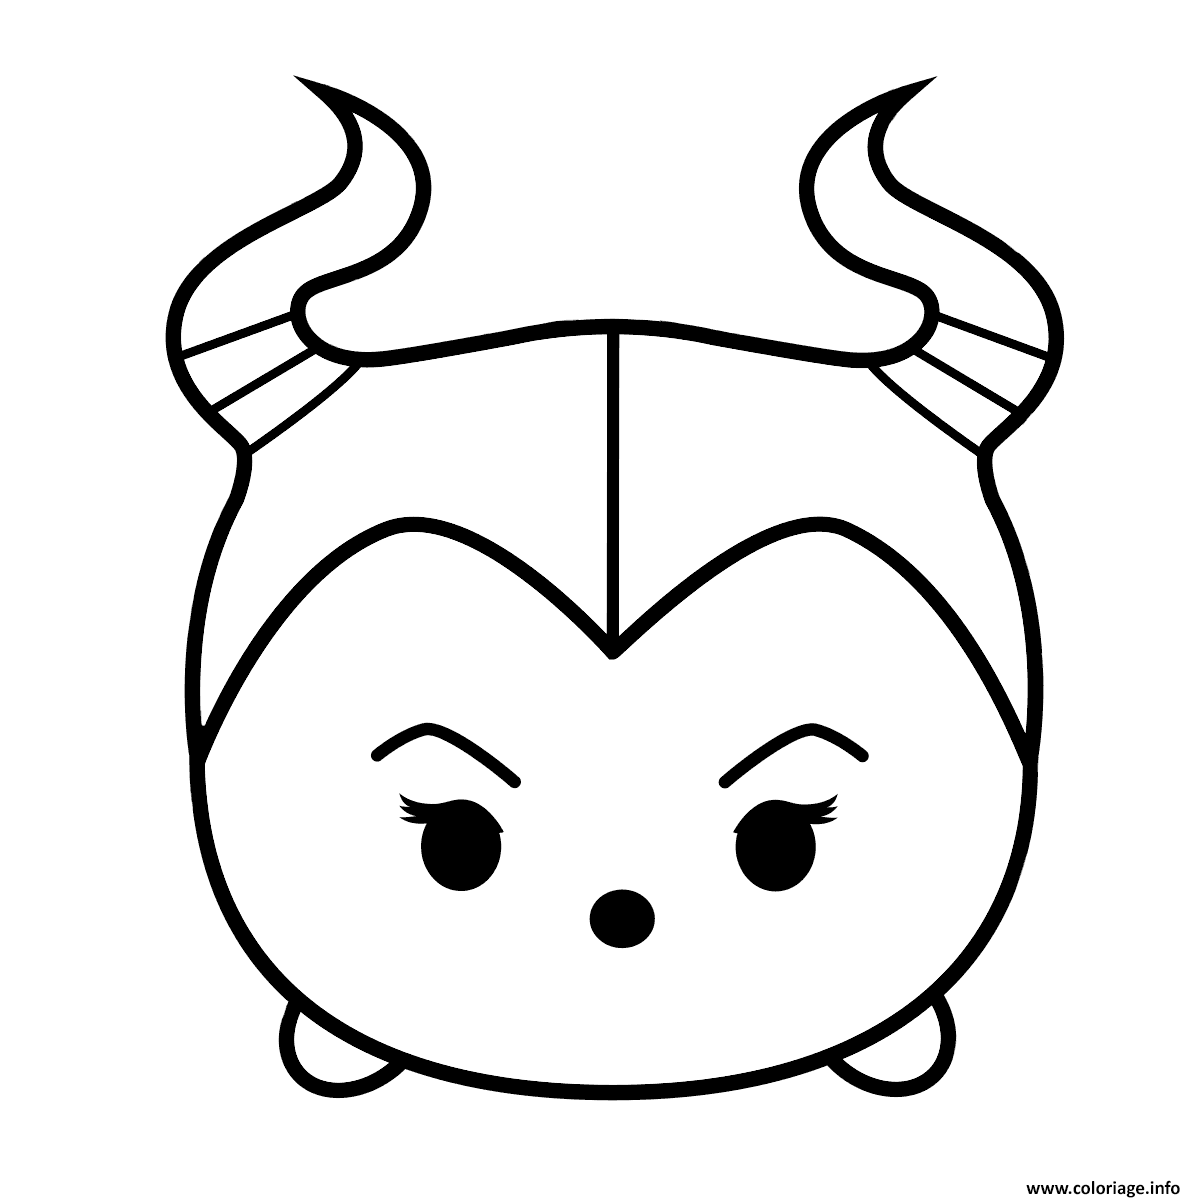 Coloriage cute maleficent tsum tsum for Tsum tsum coloring pages